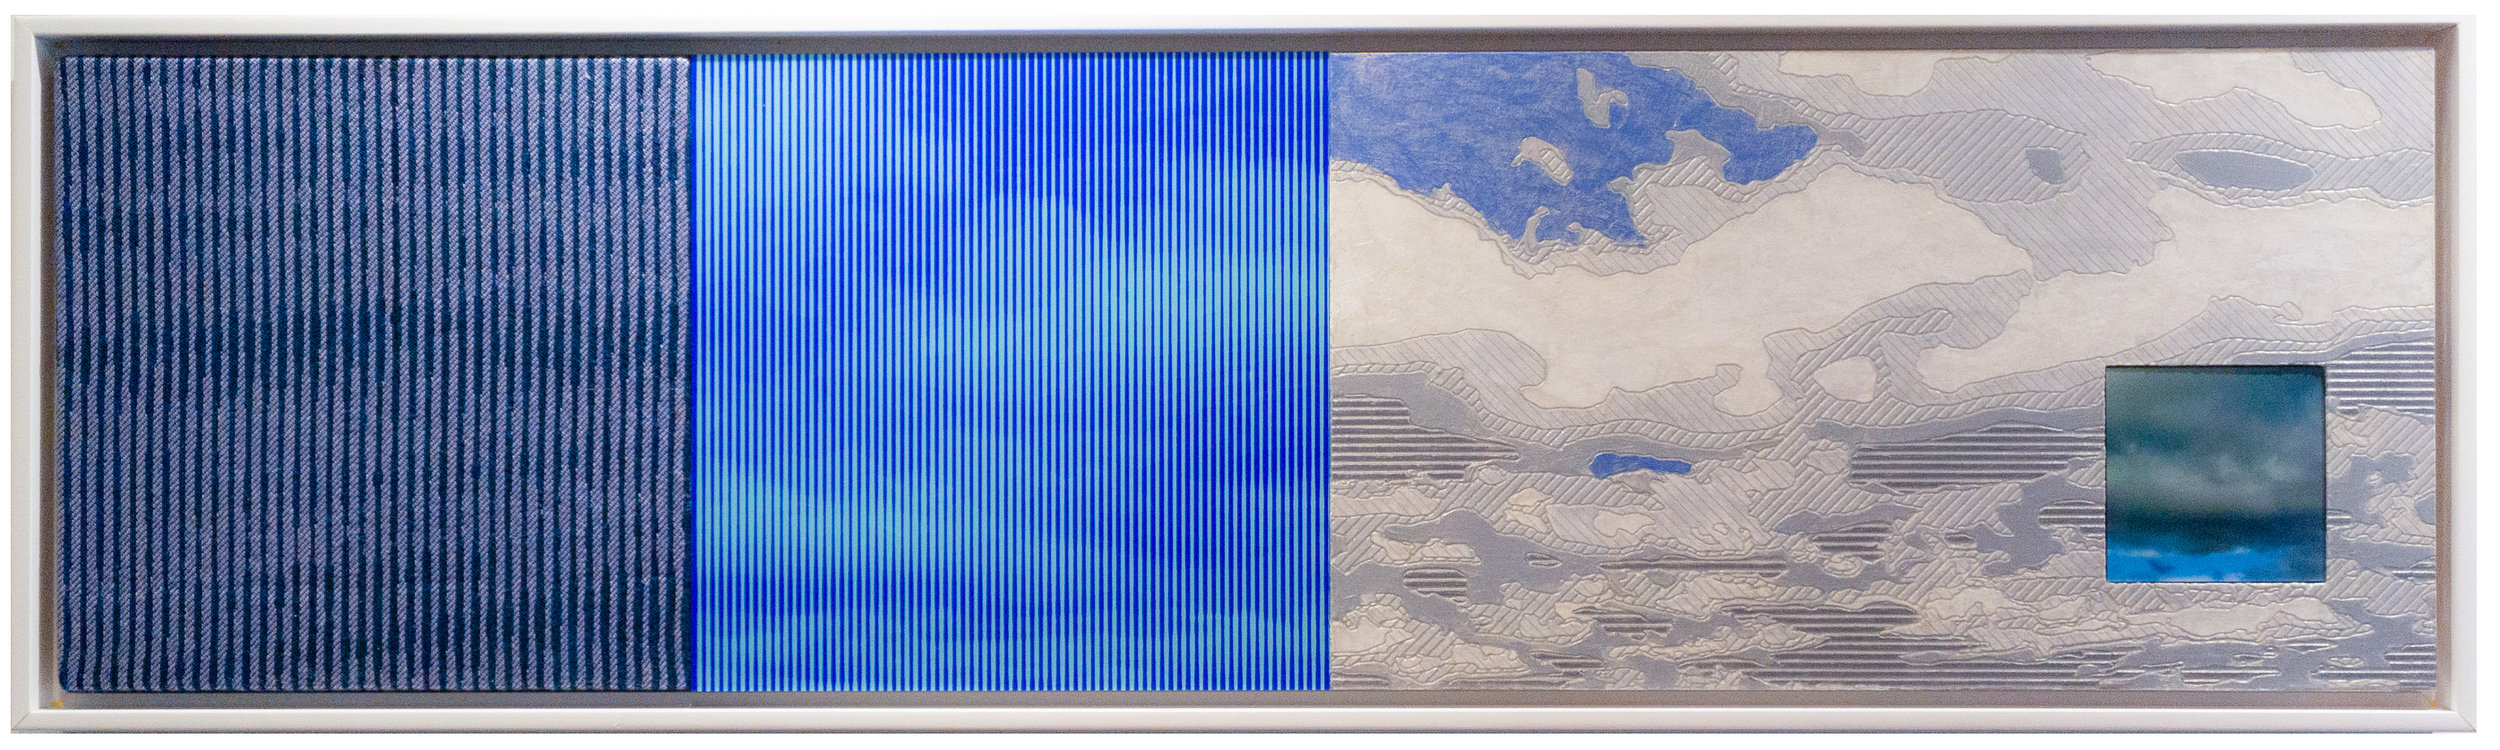 """Wide Open   44"""" x 12"""" Jacquard tapestry, painted wood relief and digital prints"""